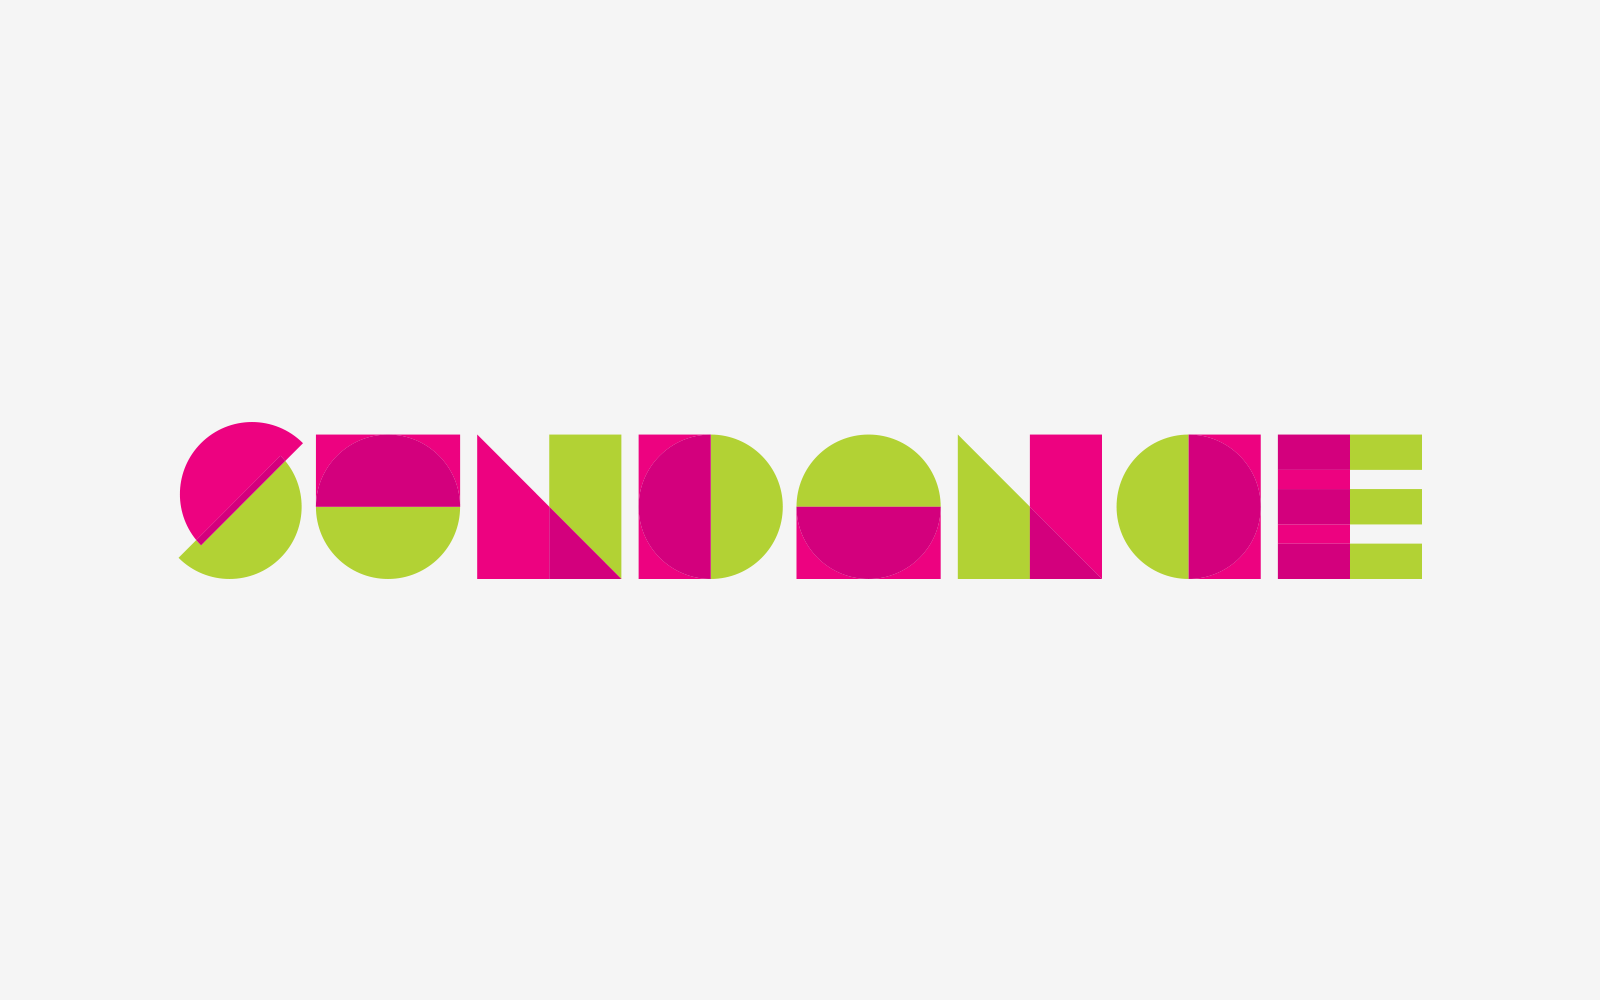 Straight Forward Design - Sundance Logo